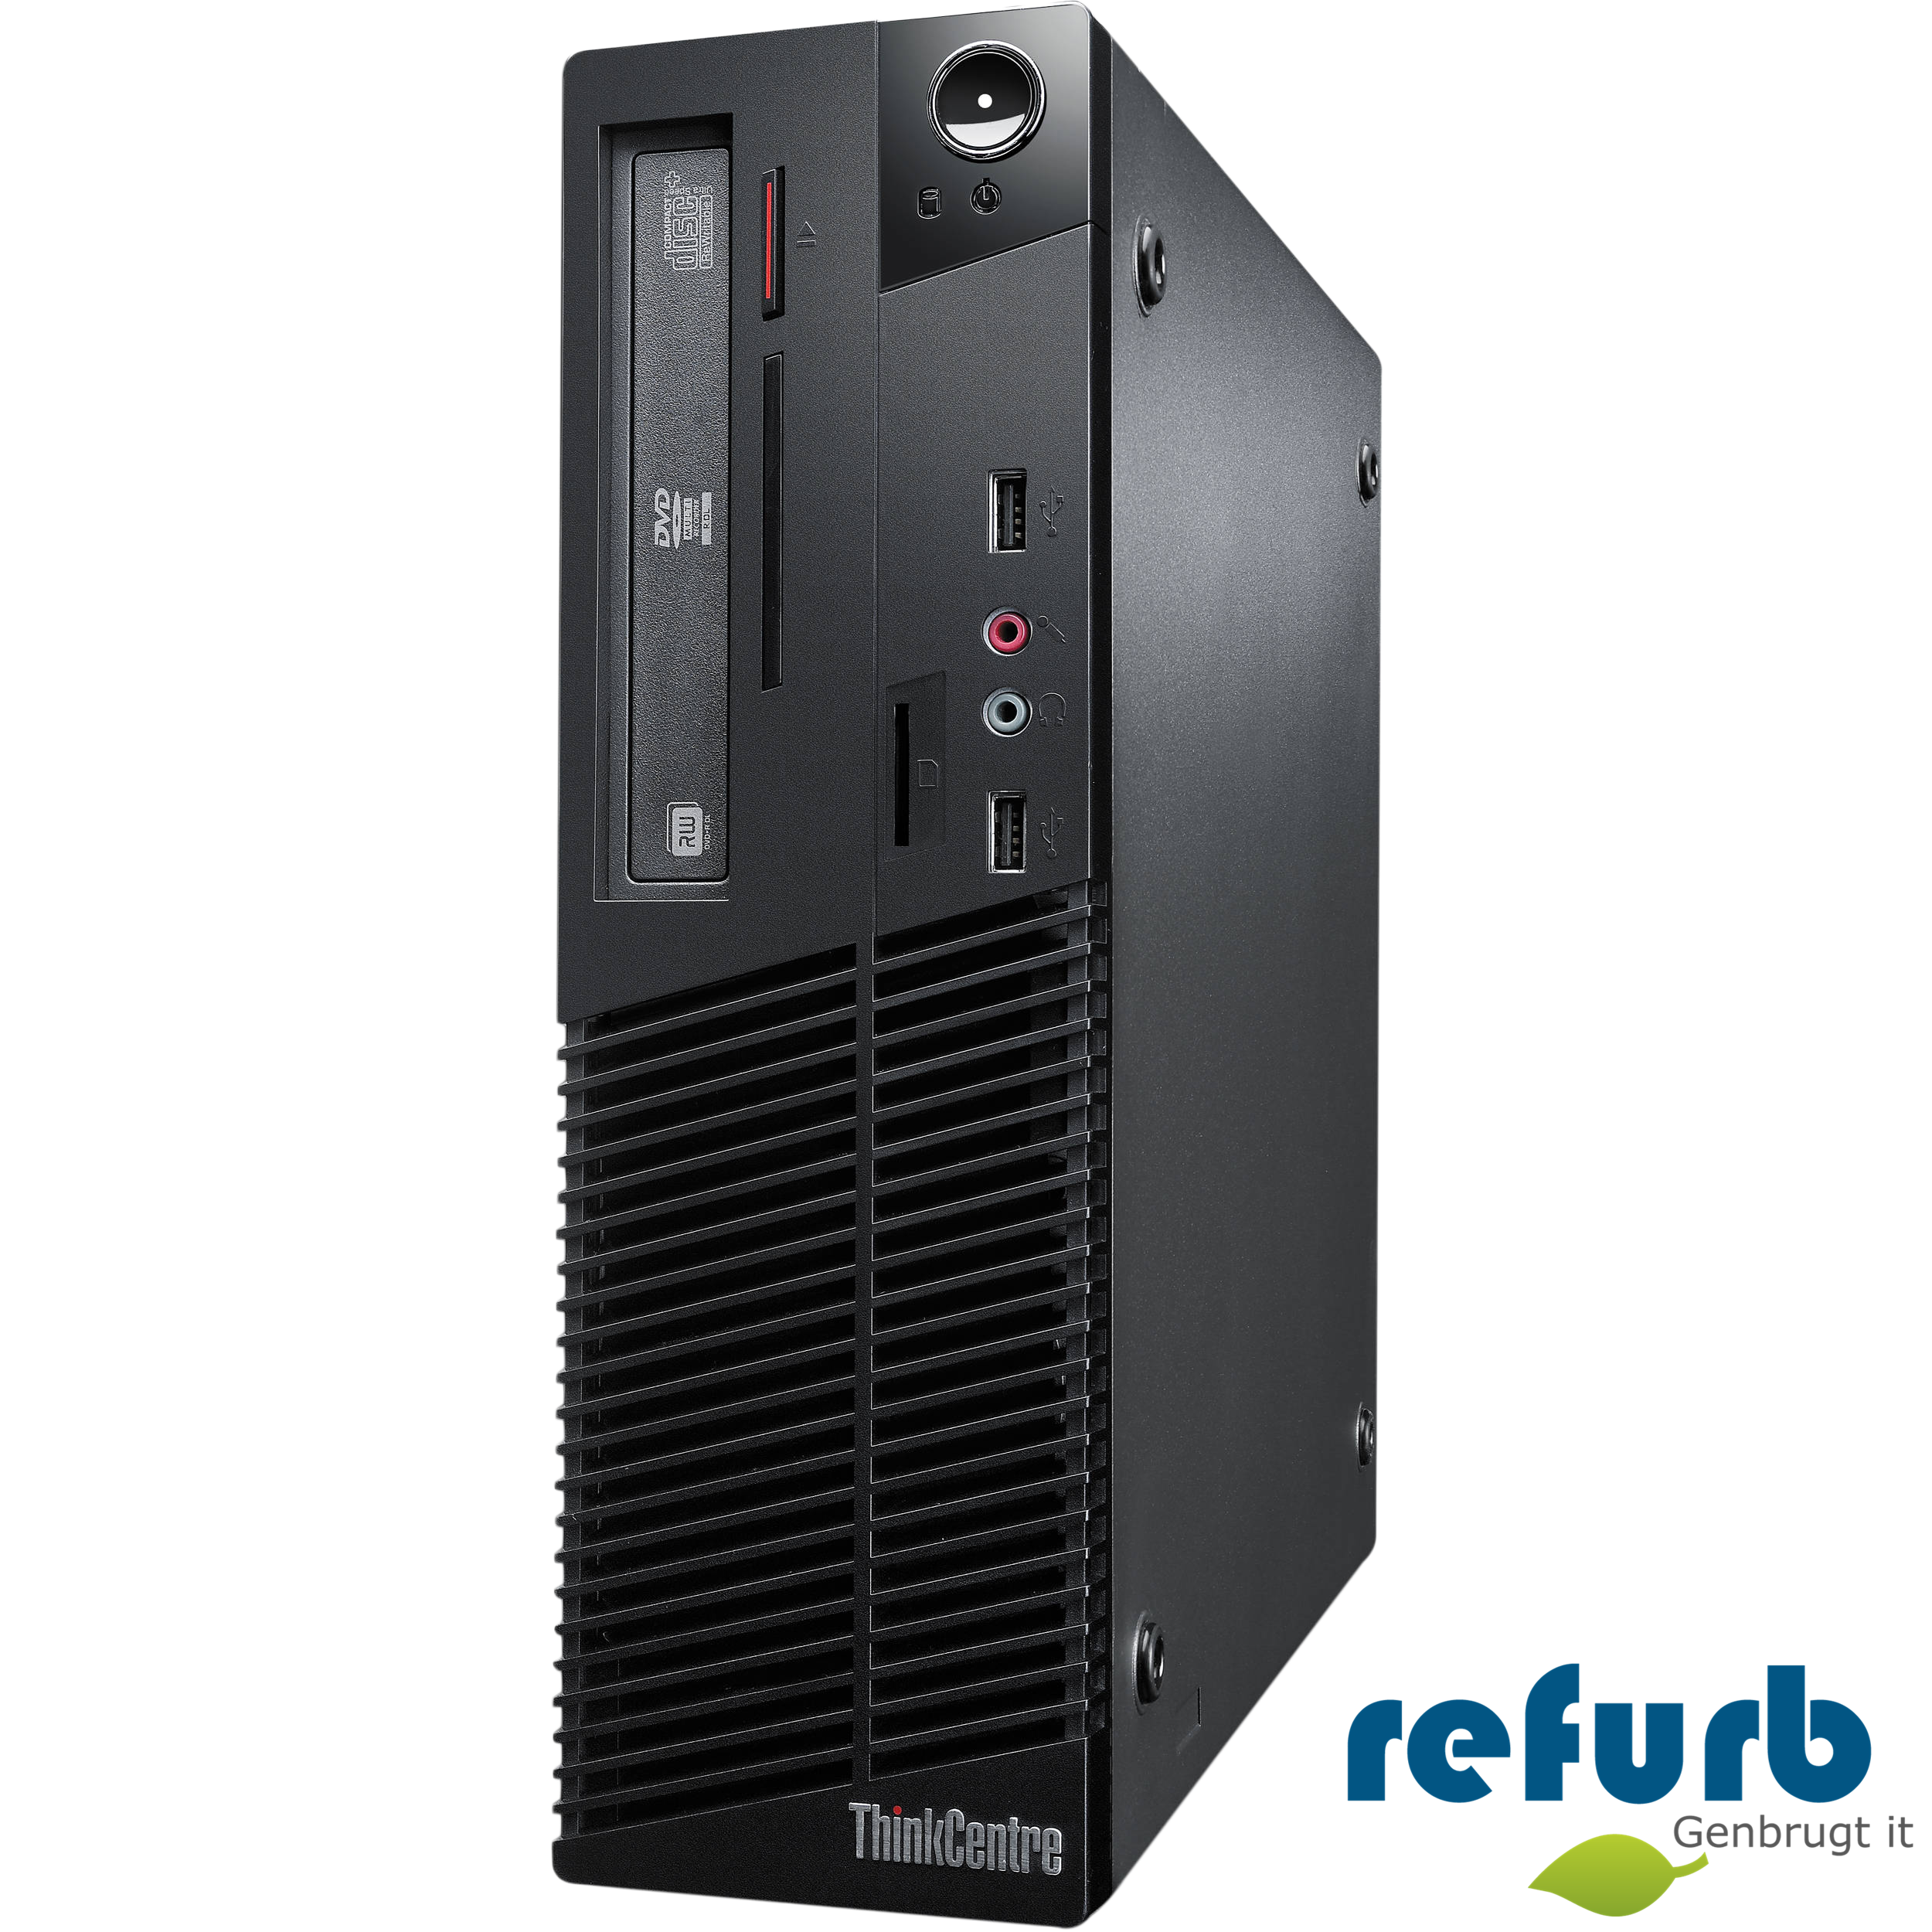 Lenovo Lenovo thinkcentre m73 sff fra refurb